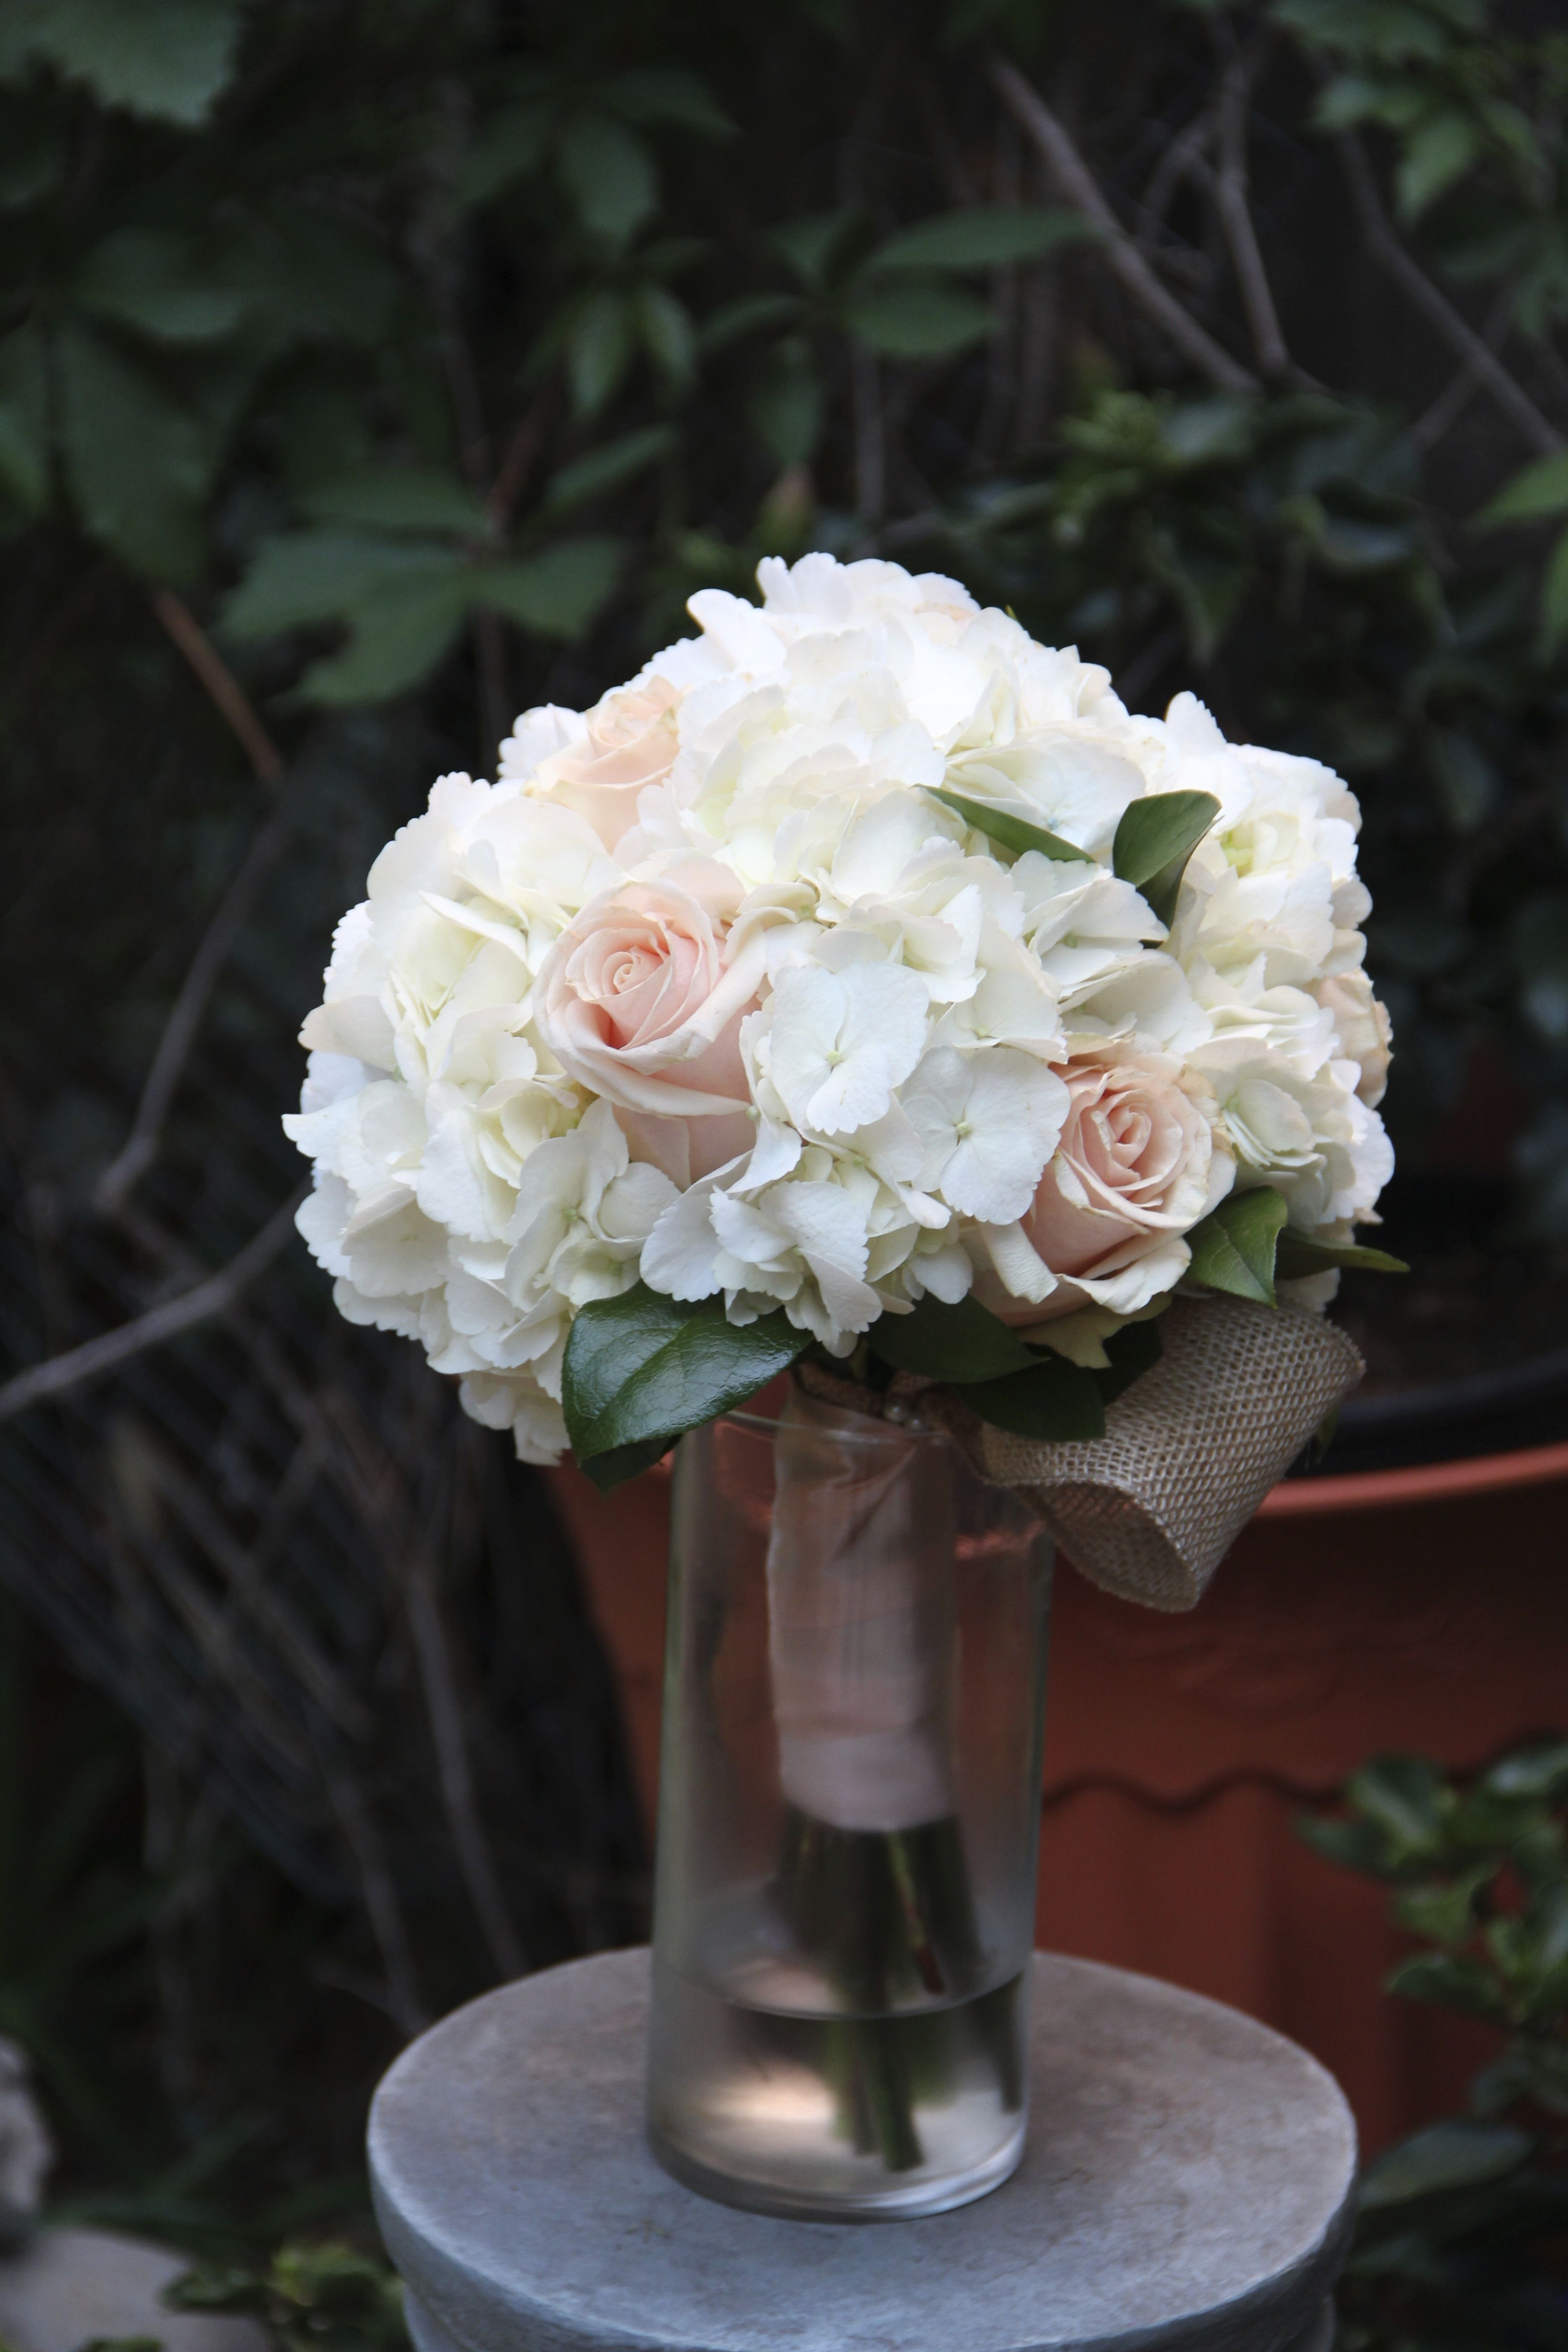 At Ambience Fls We Do More To Help You Make The Most Of Your Wedding Flower Budget Our Colorado Springs Florists Are Here